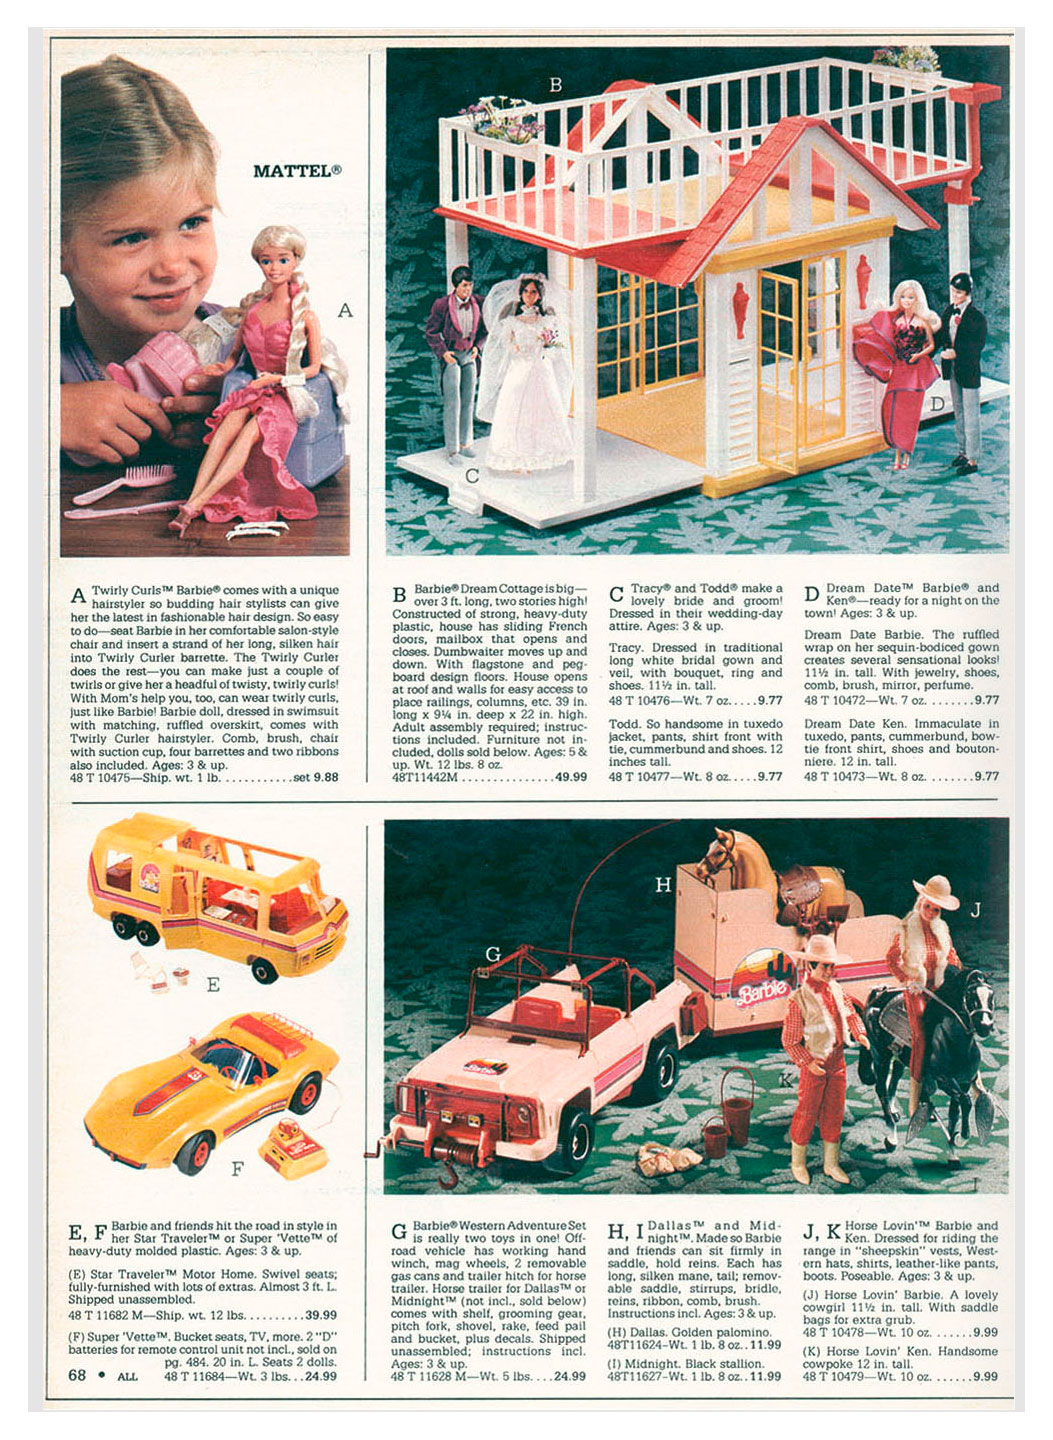 From 1983 Montgomery Ward Christmas catalogue